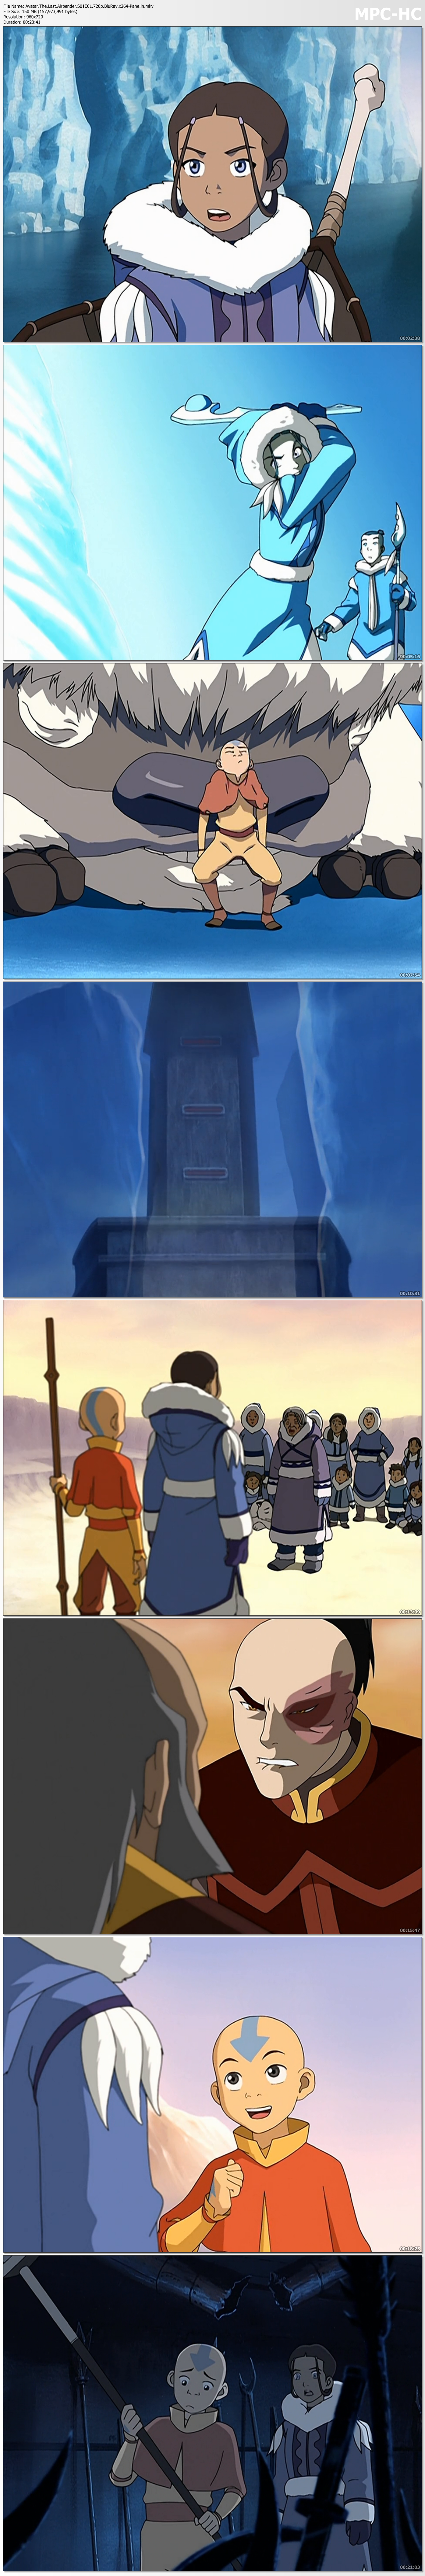 Avatar: The Last Airbender Season 1-3 Complete BluRay 720p